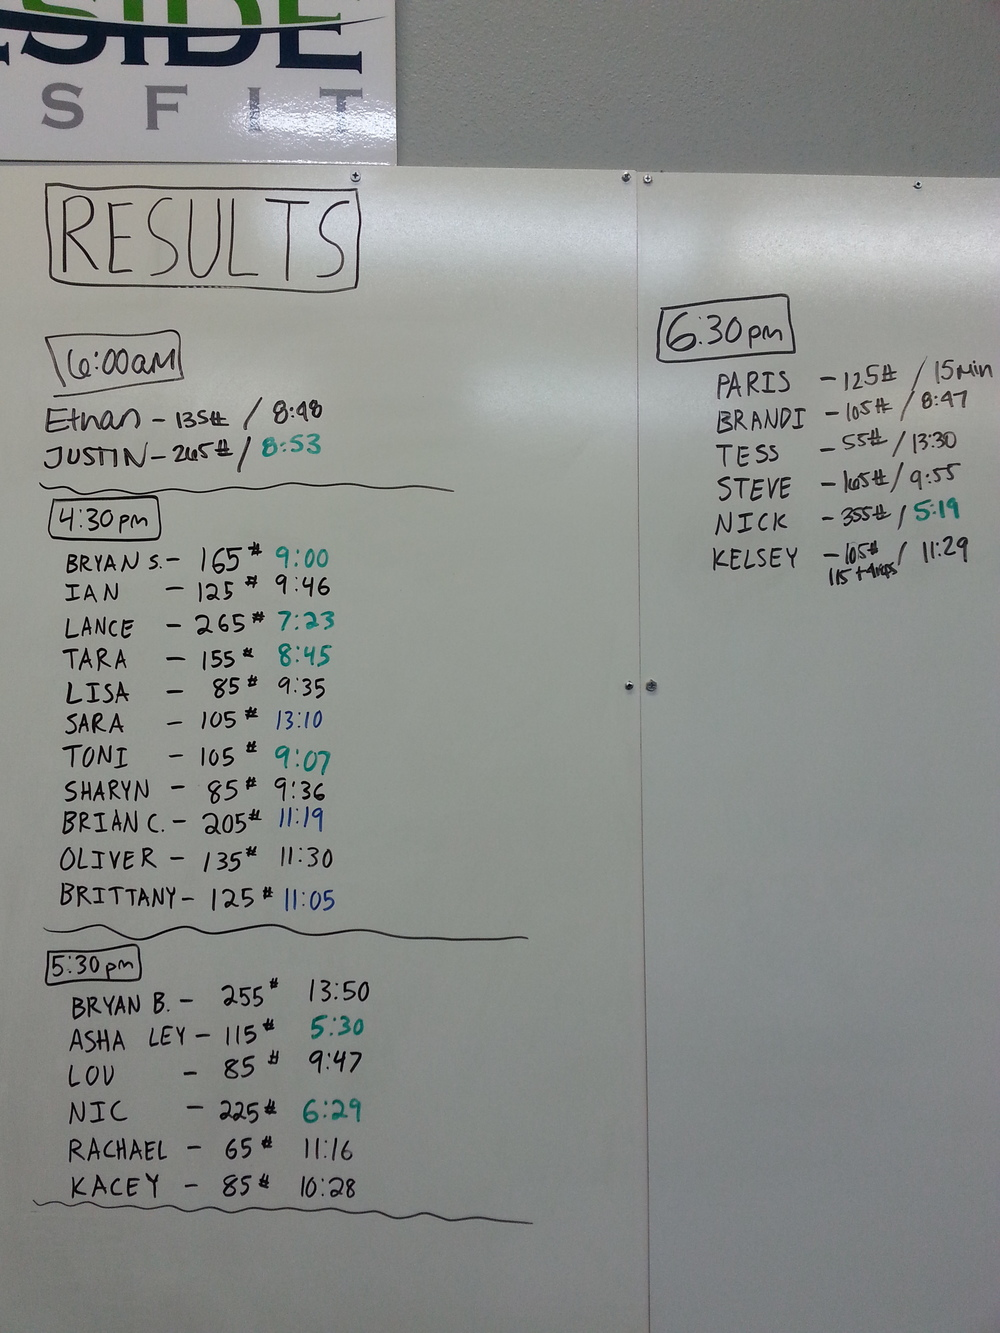 Results from 7/31